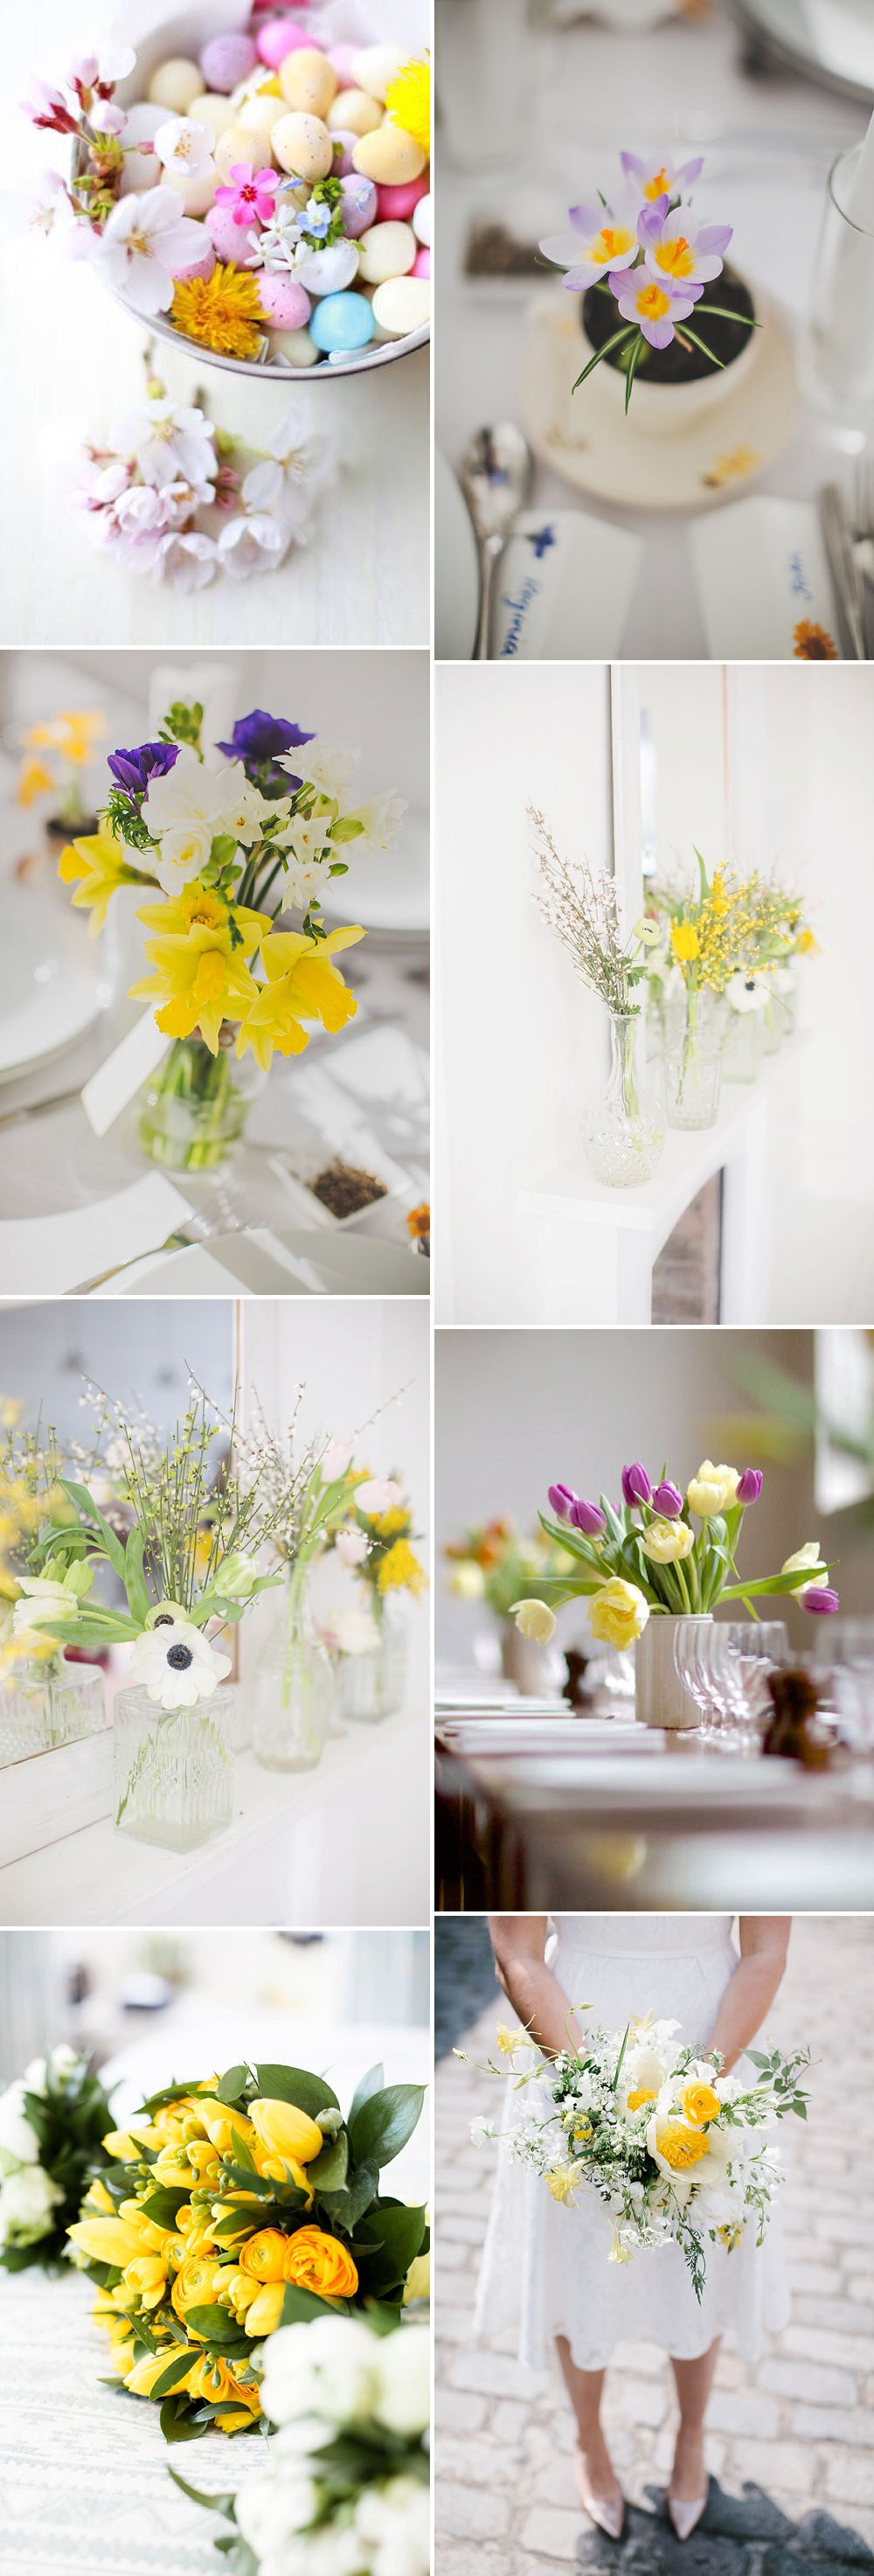 Spring Floral Inspiration For Weddings // The Love Lust List